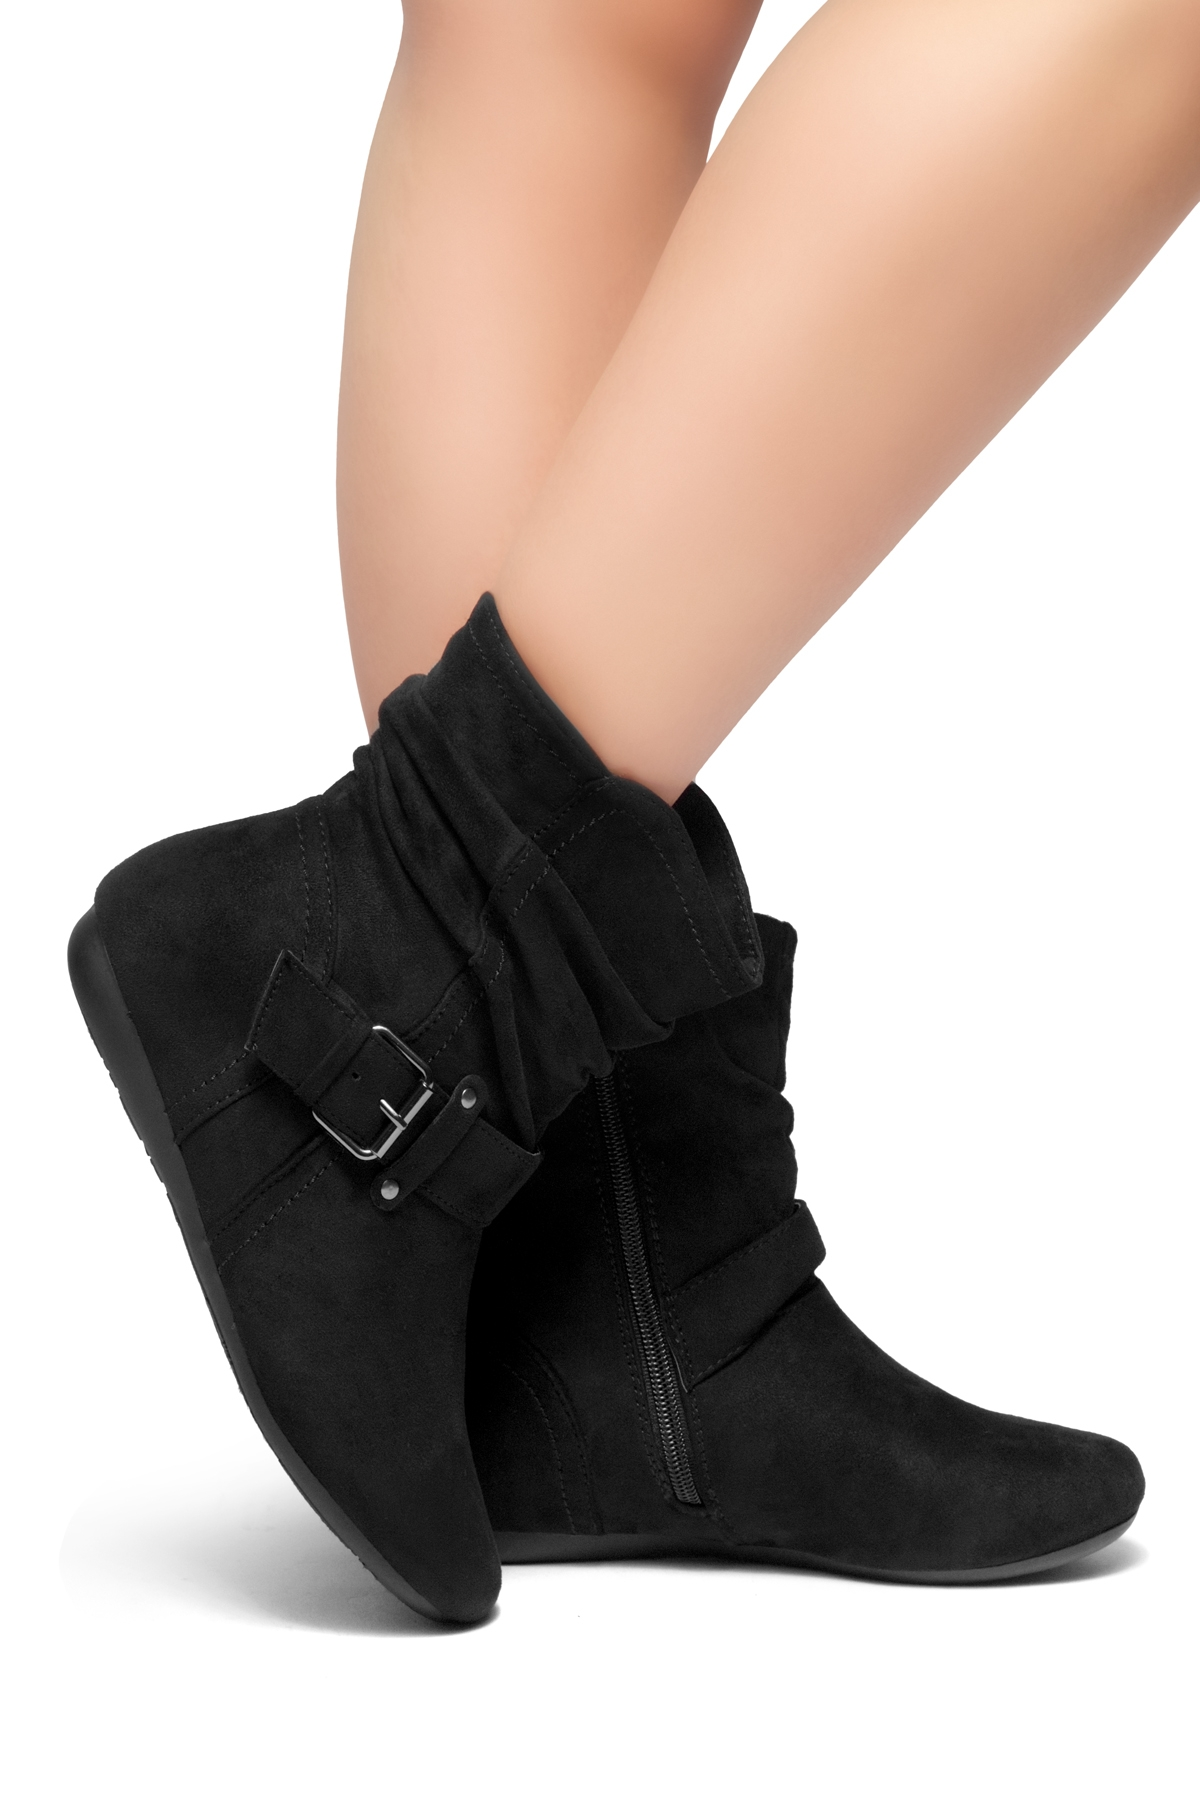 c803aa221cd17 ... Women's Black Shearlly Faux Suede Buckled up booties--[Runs Small,  Order One